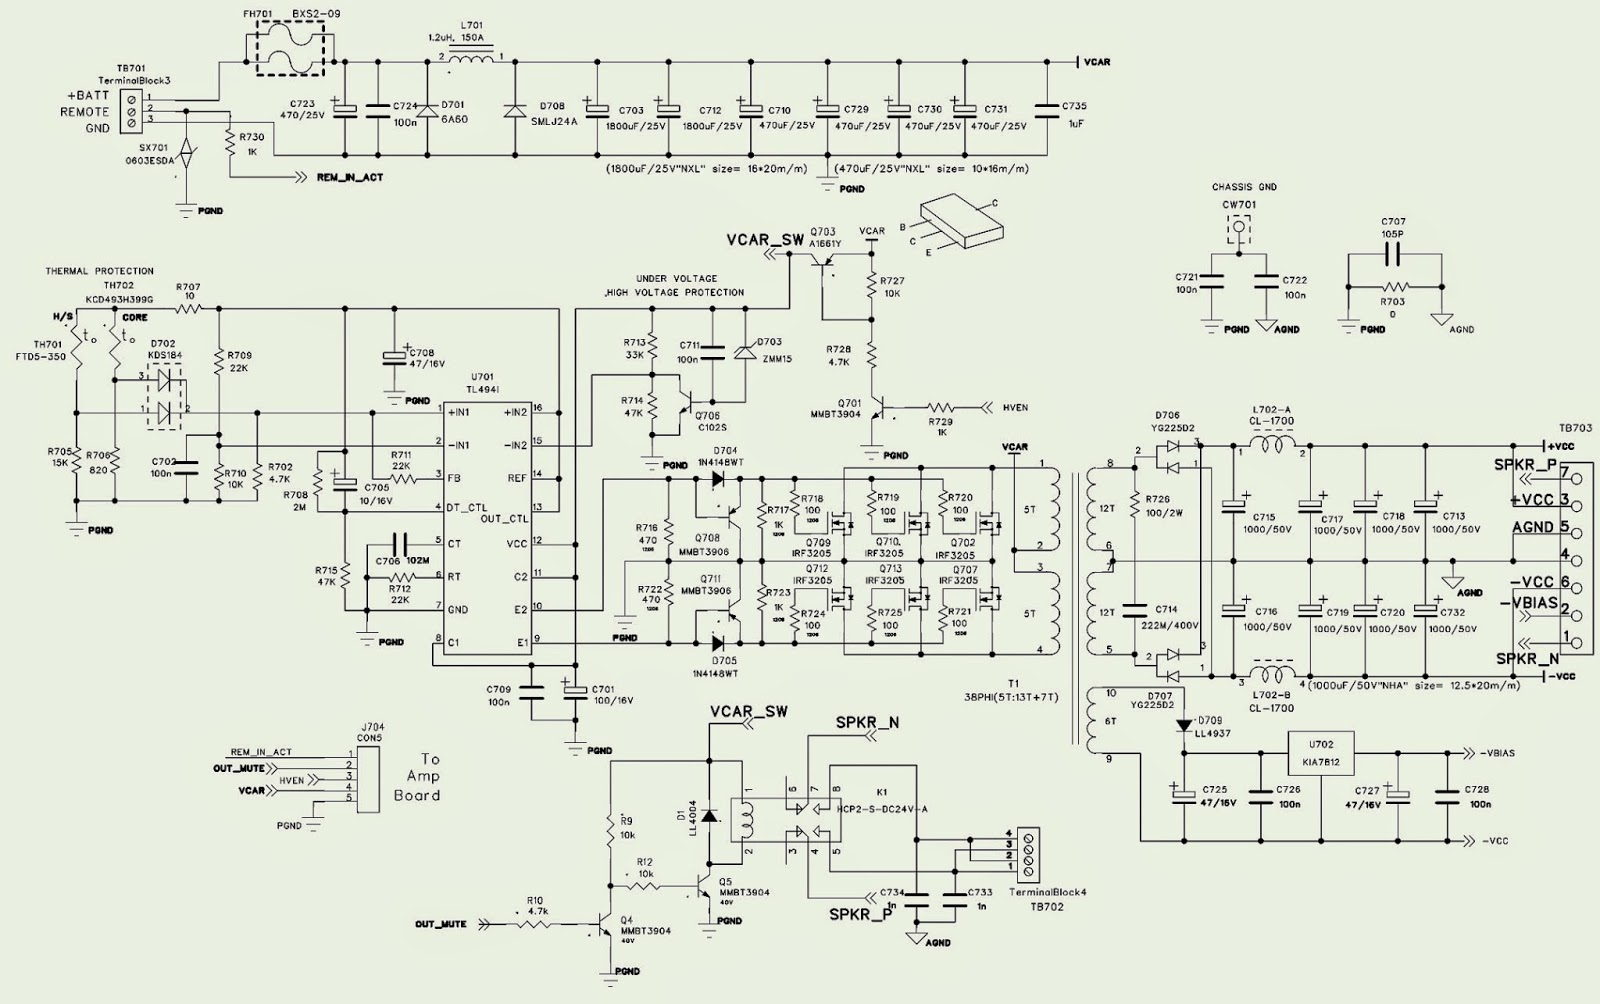 CLICK ON THE SCHEMATICS TO ZOOM IN